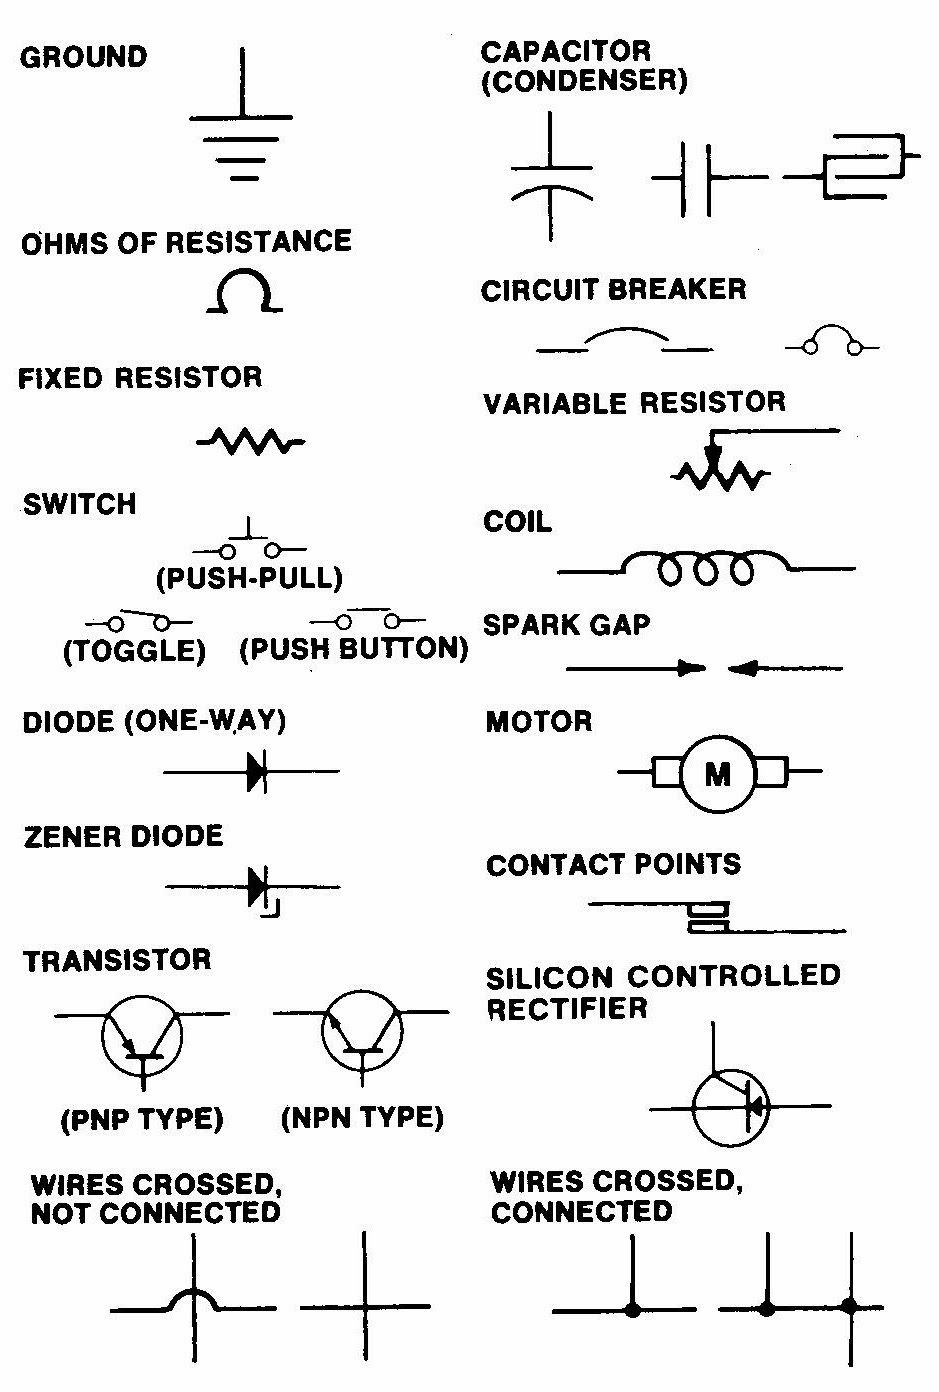 Wiring Diagram Symbols For Car Electrical symbols